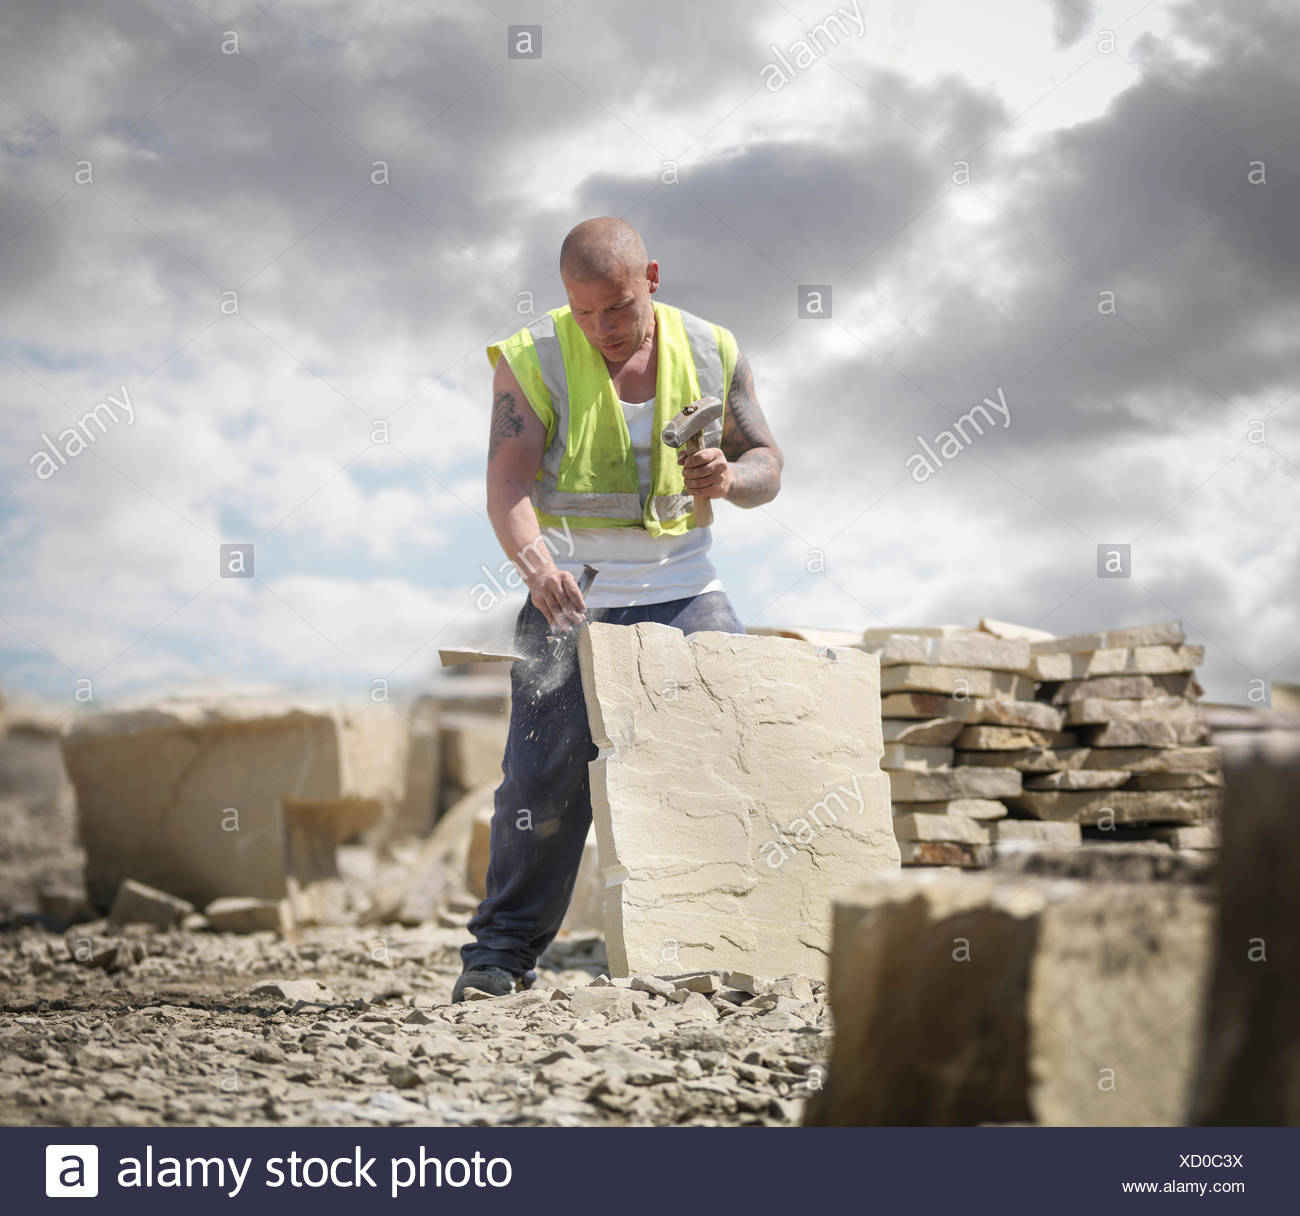 Quarry worker shaping sandstone in Yorkshire stone quarry - Stock Image